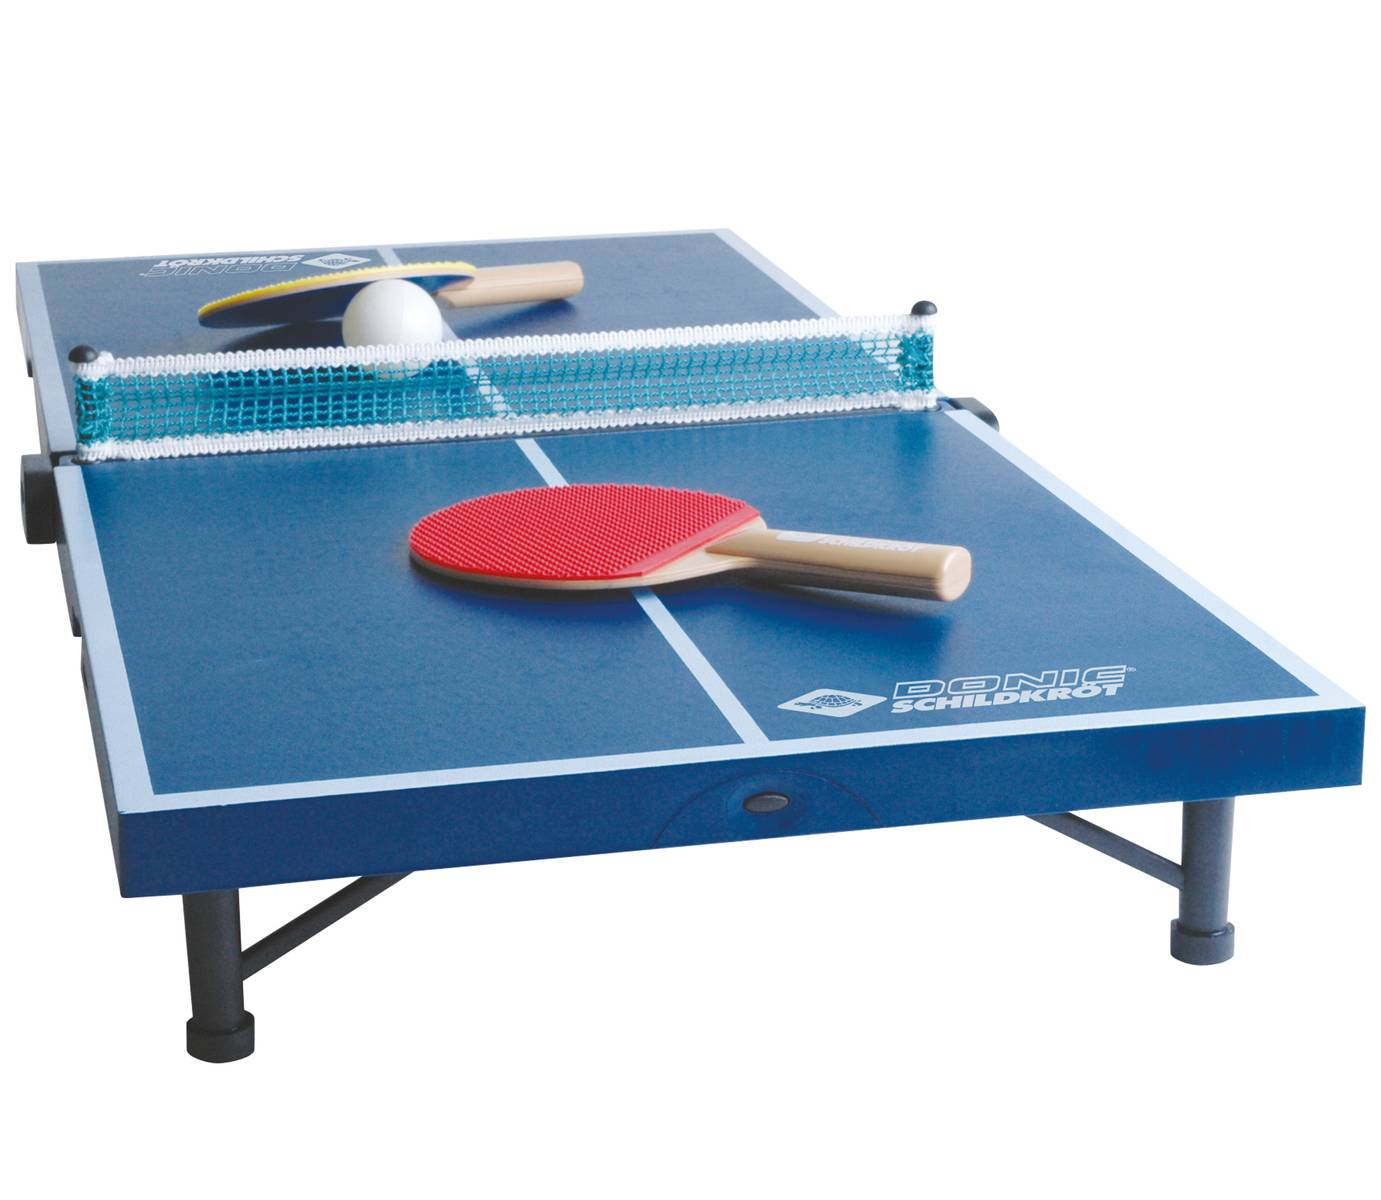 Donic schildkr t sets for Small ping pong balls